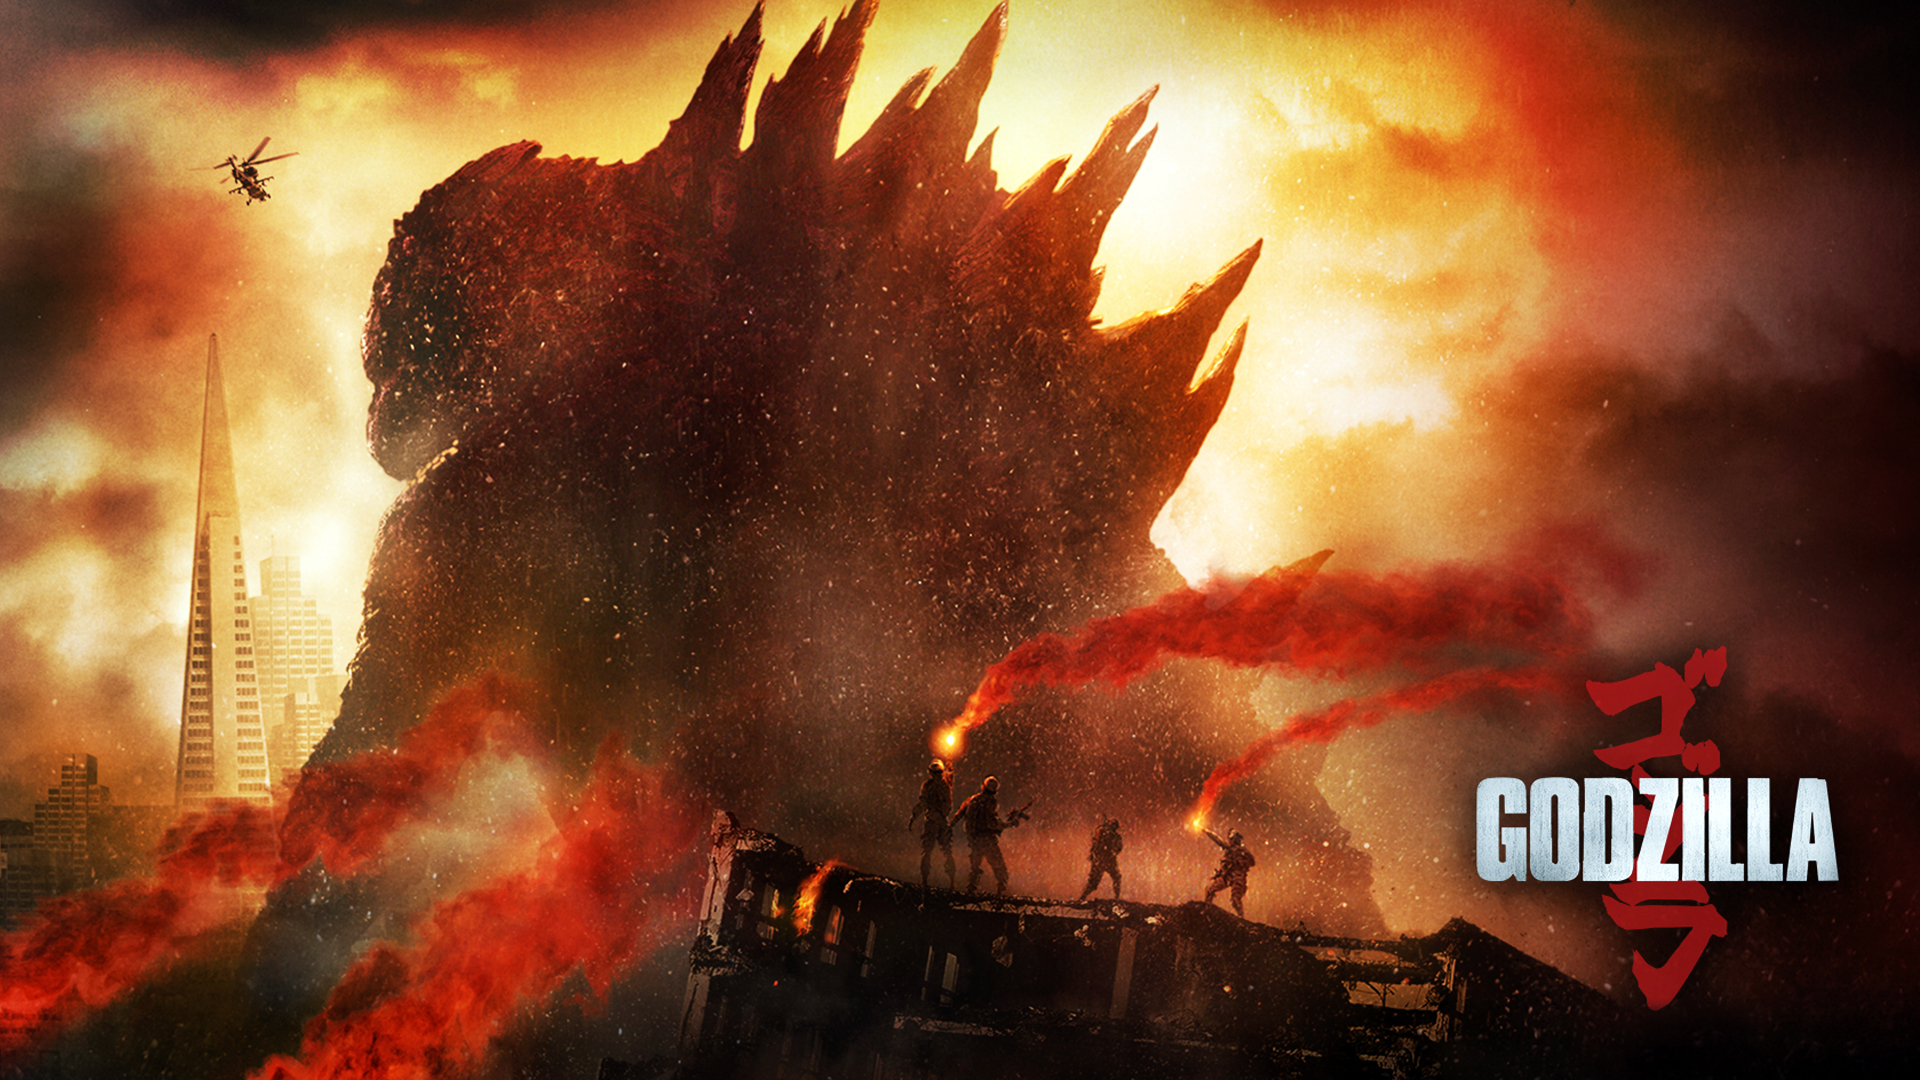 godzilla 2014 movie hd 1920x1080 1080p wallpaper and compatible for 1920x1080